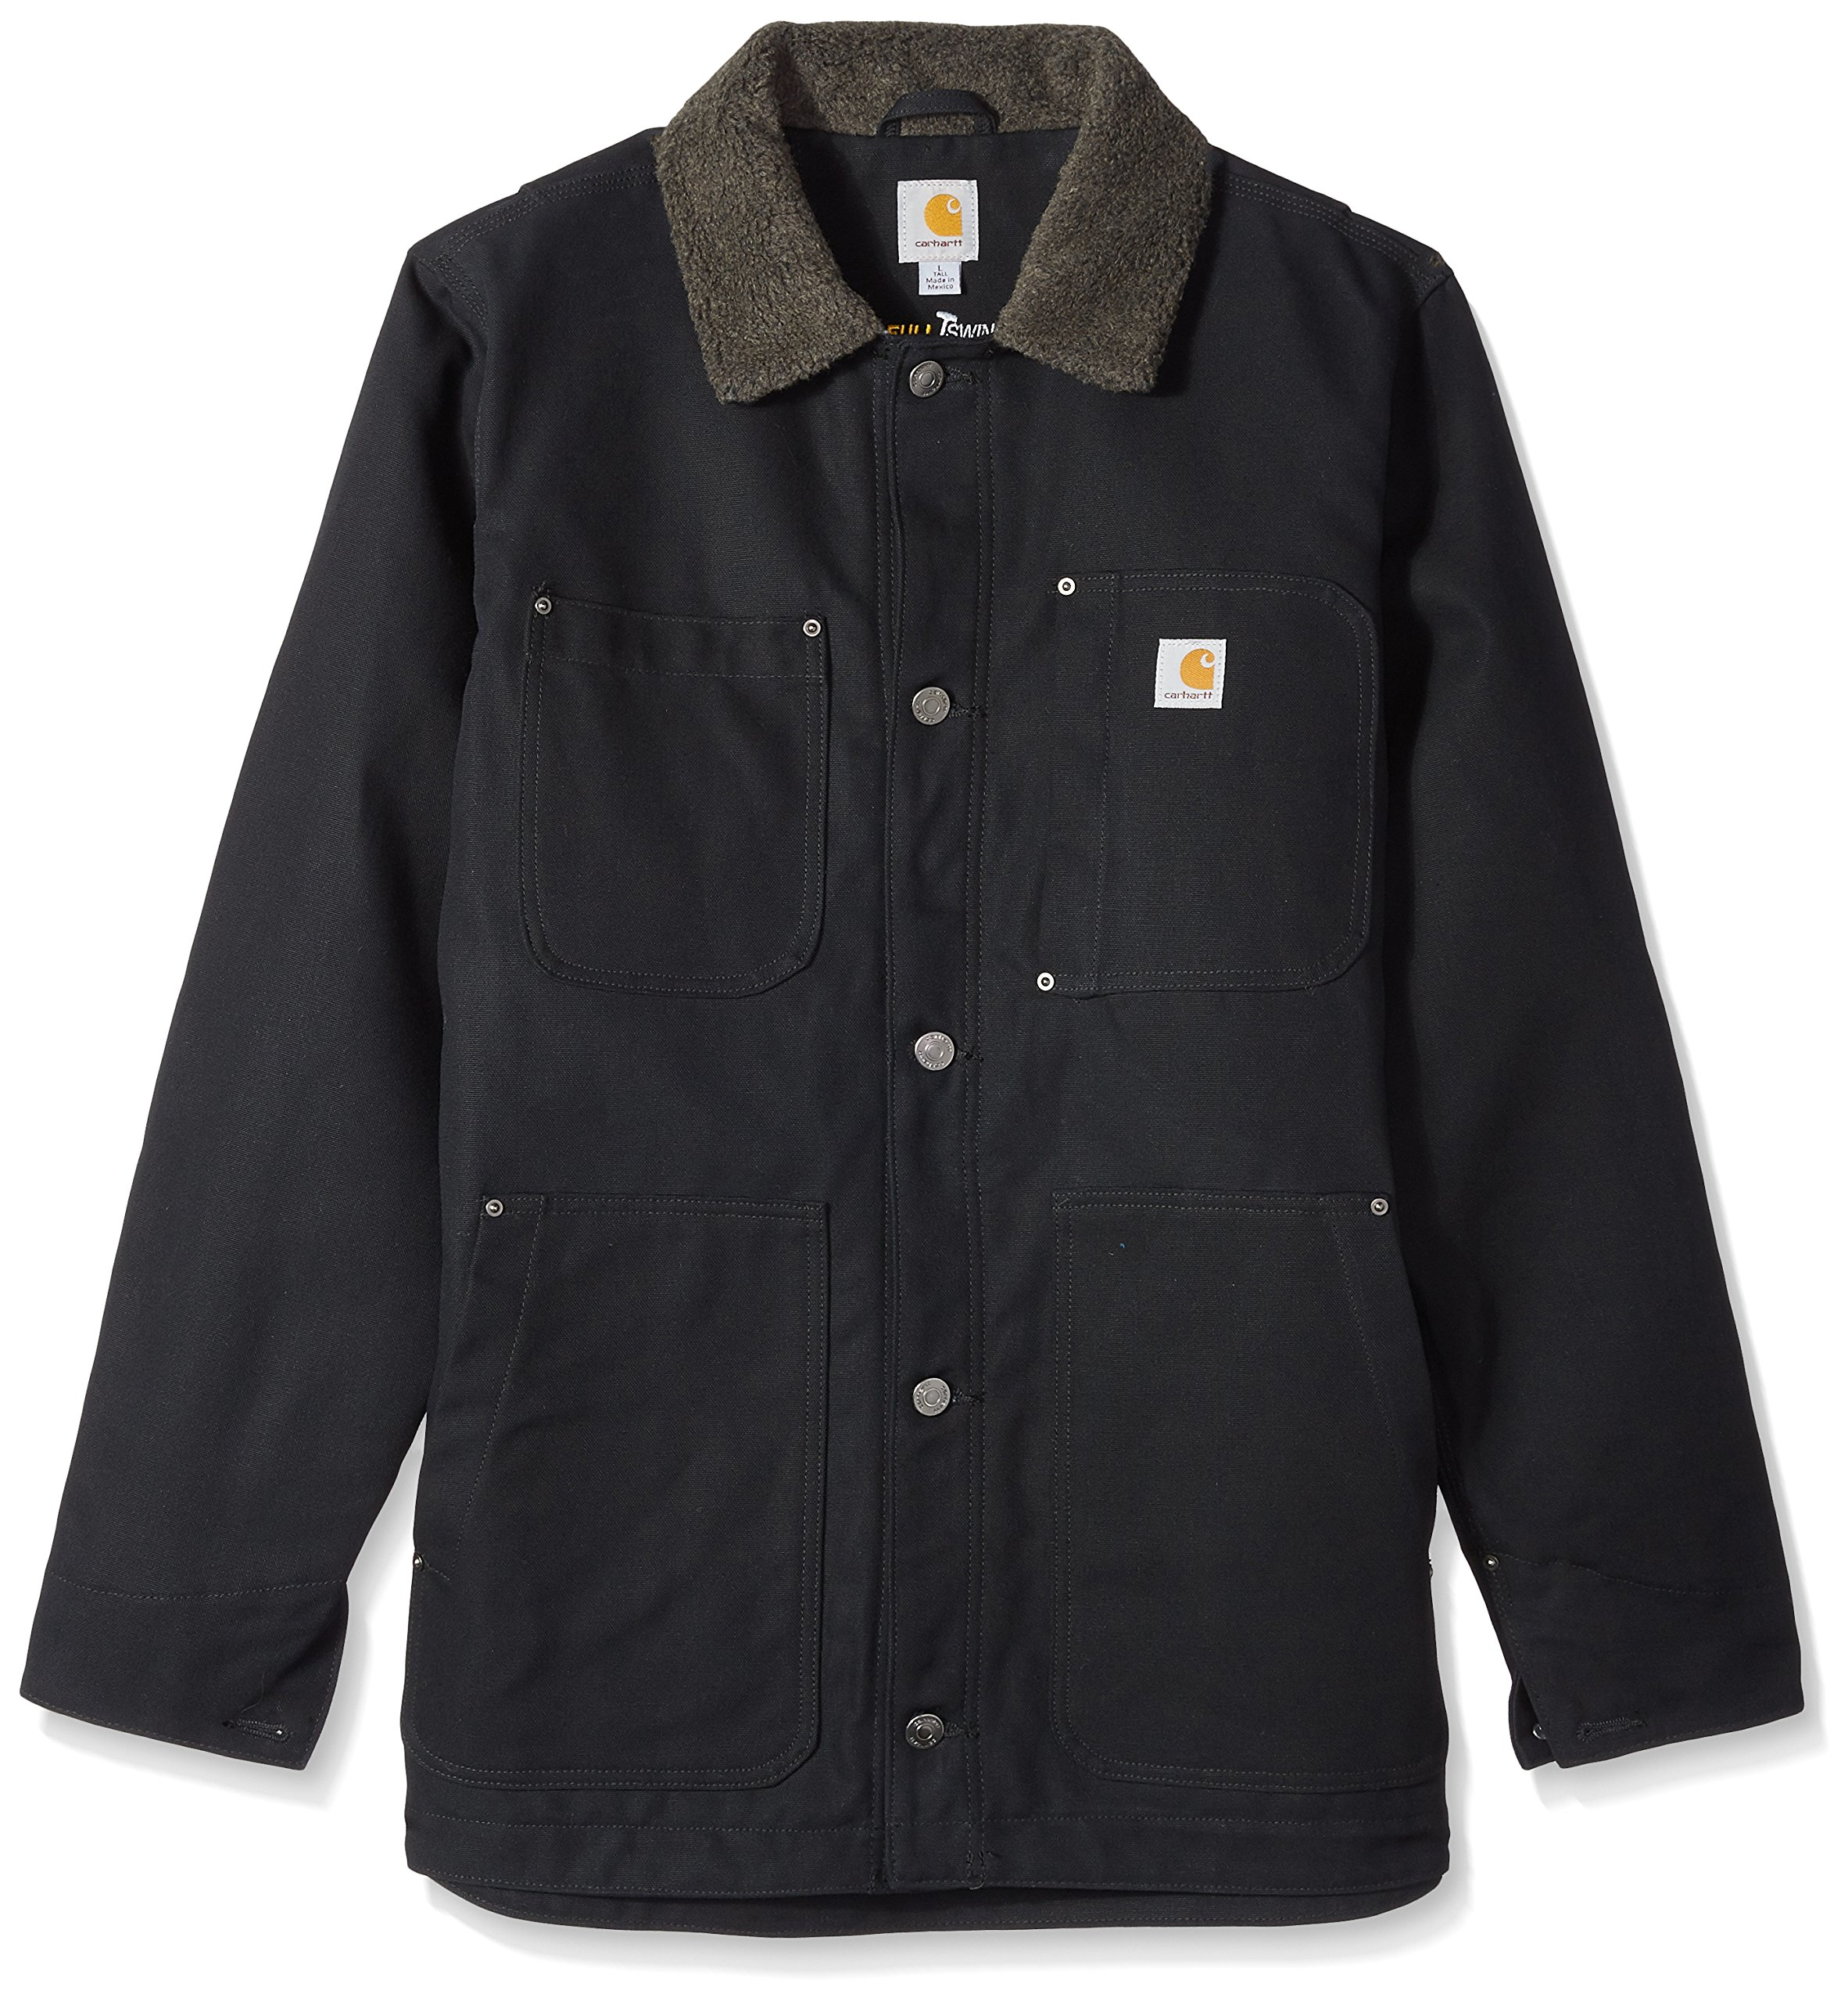 Carhartt Men's Big Full Swing Chore Coat, Black, 2X-Large/Tall